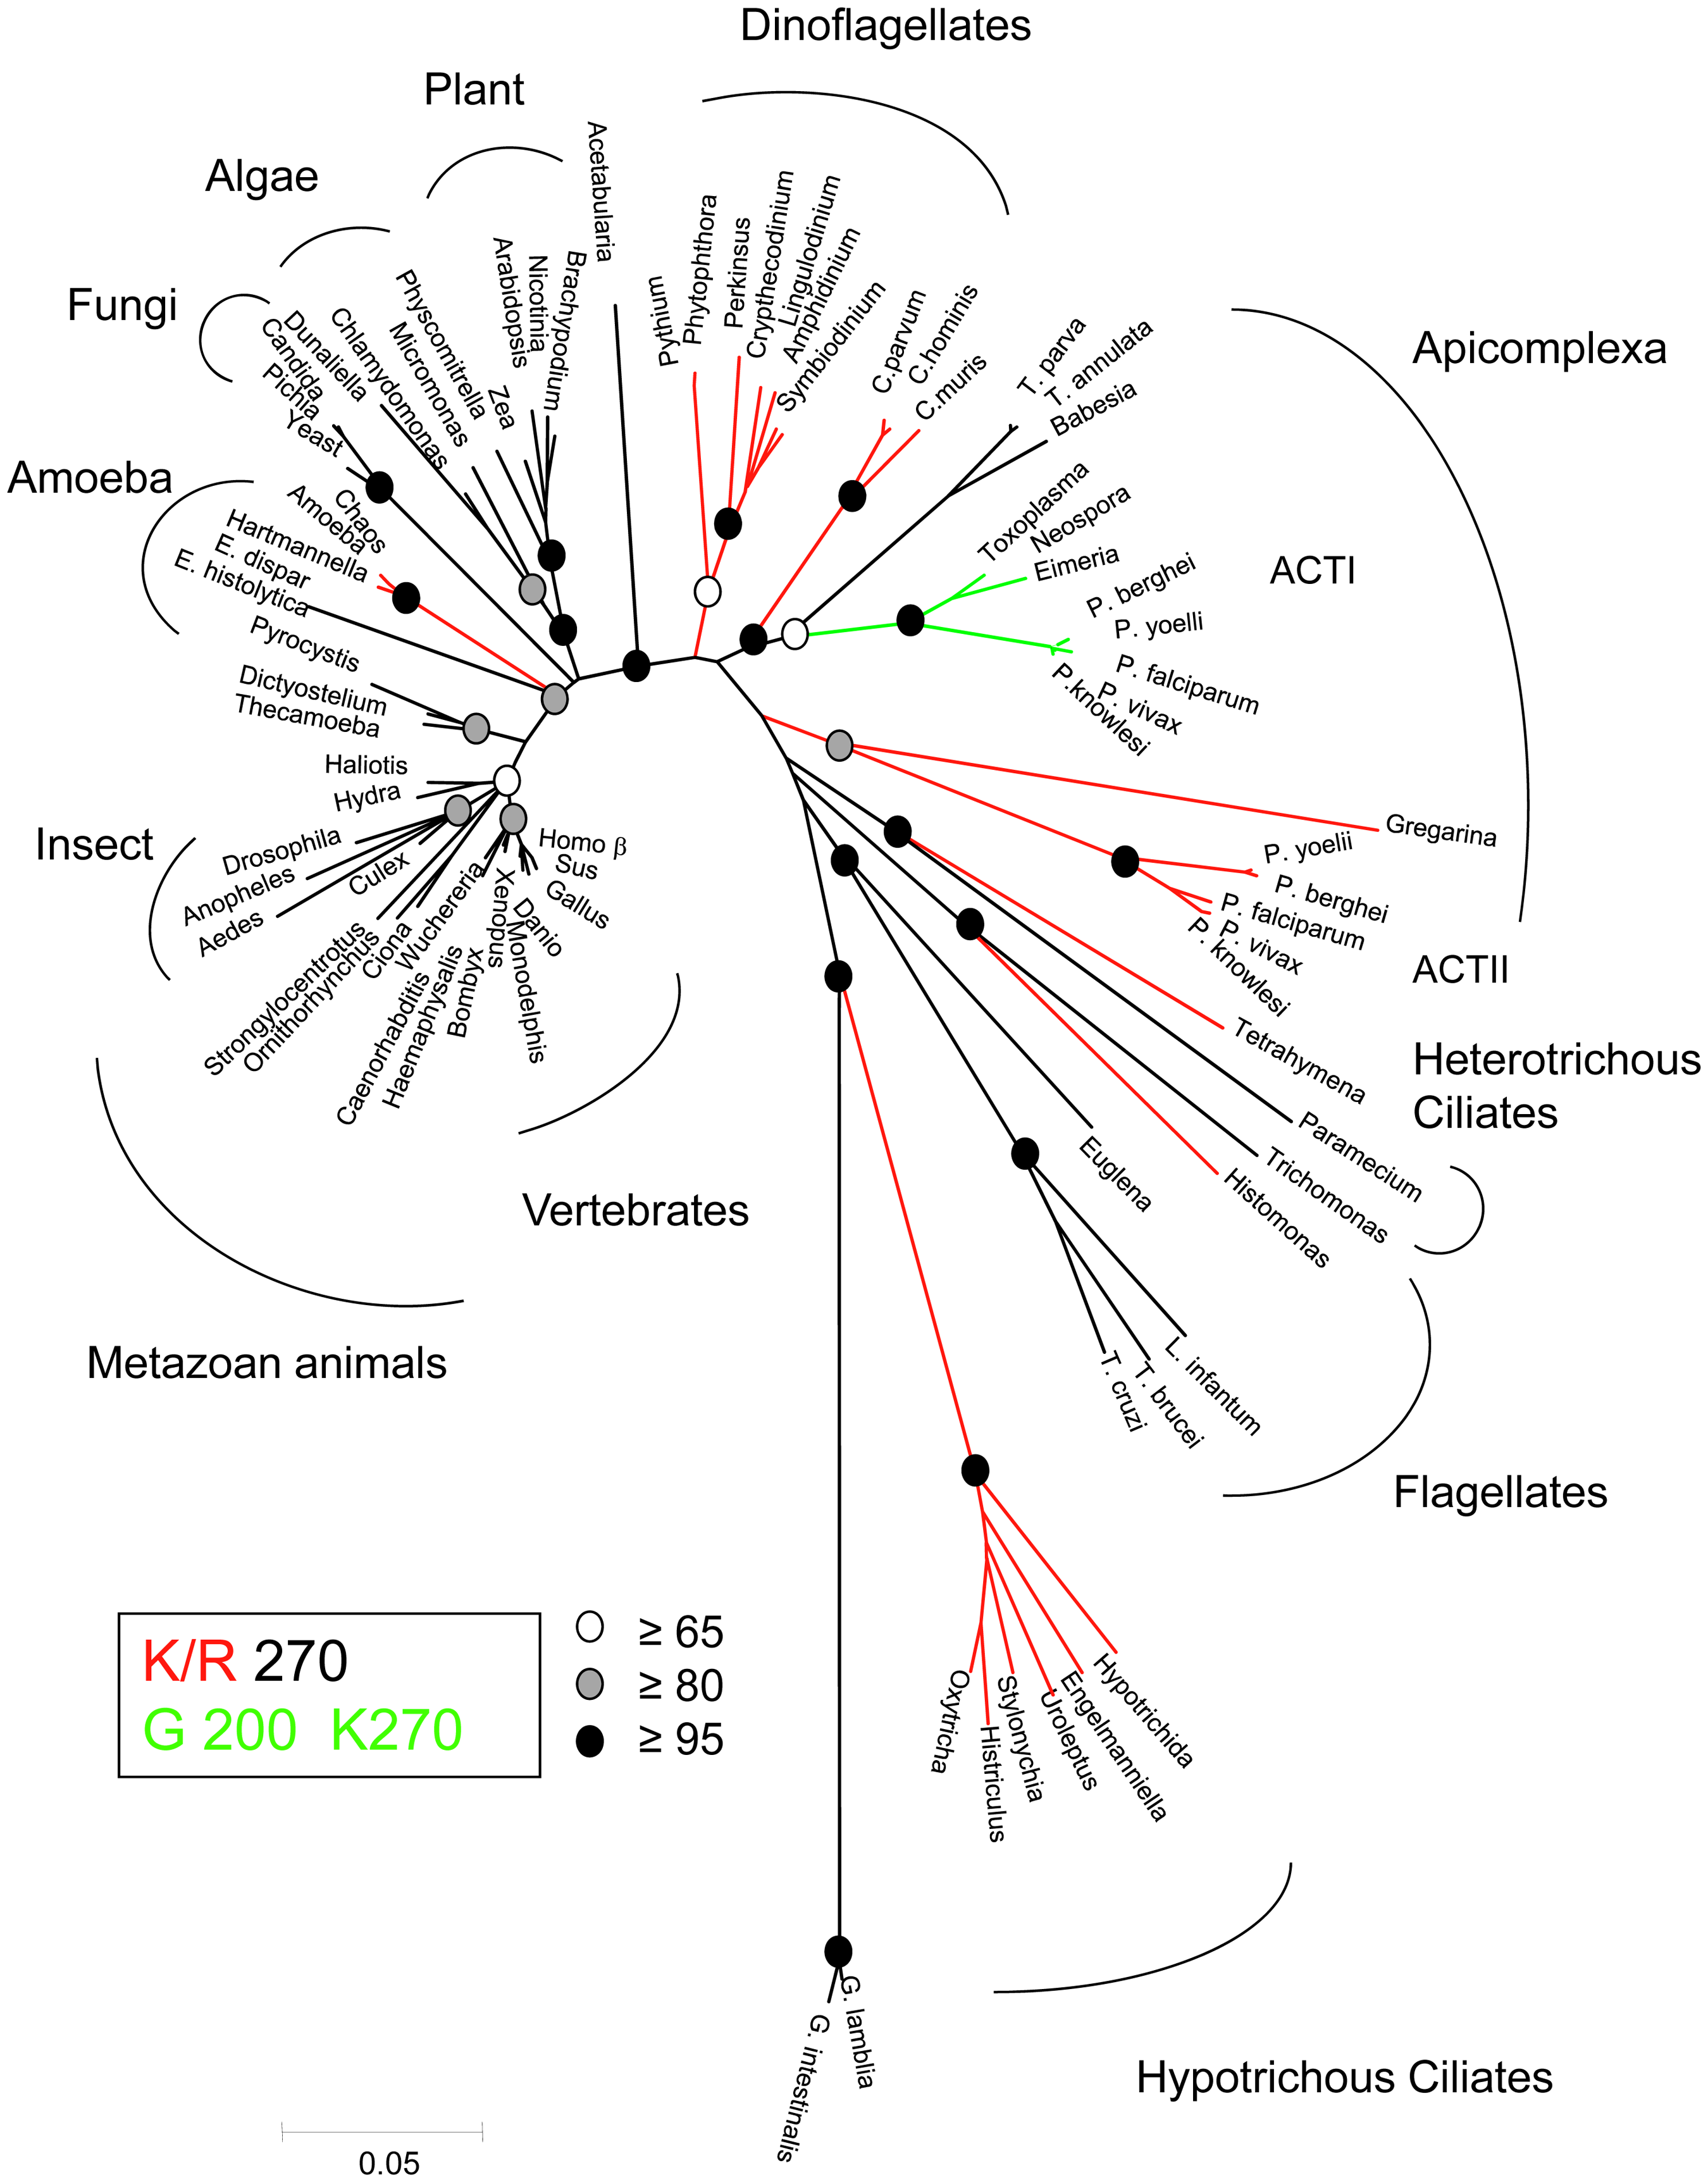 Phylogenetic tree highlighting the diversity of actins.